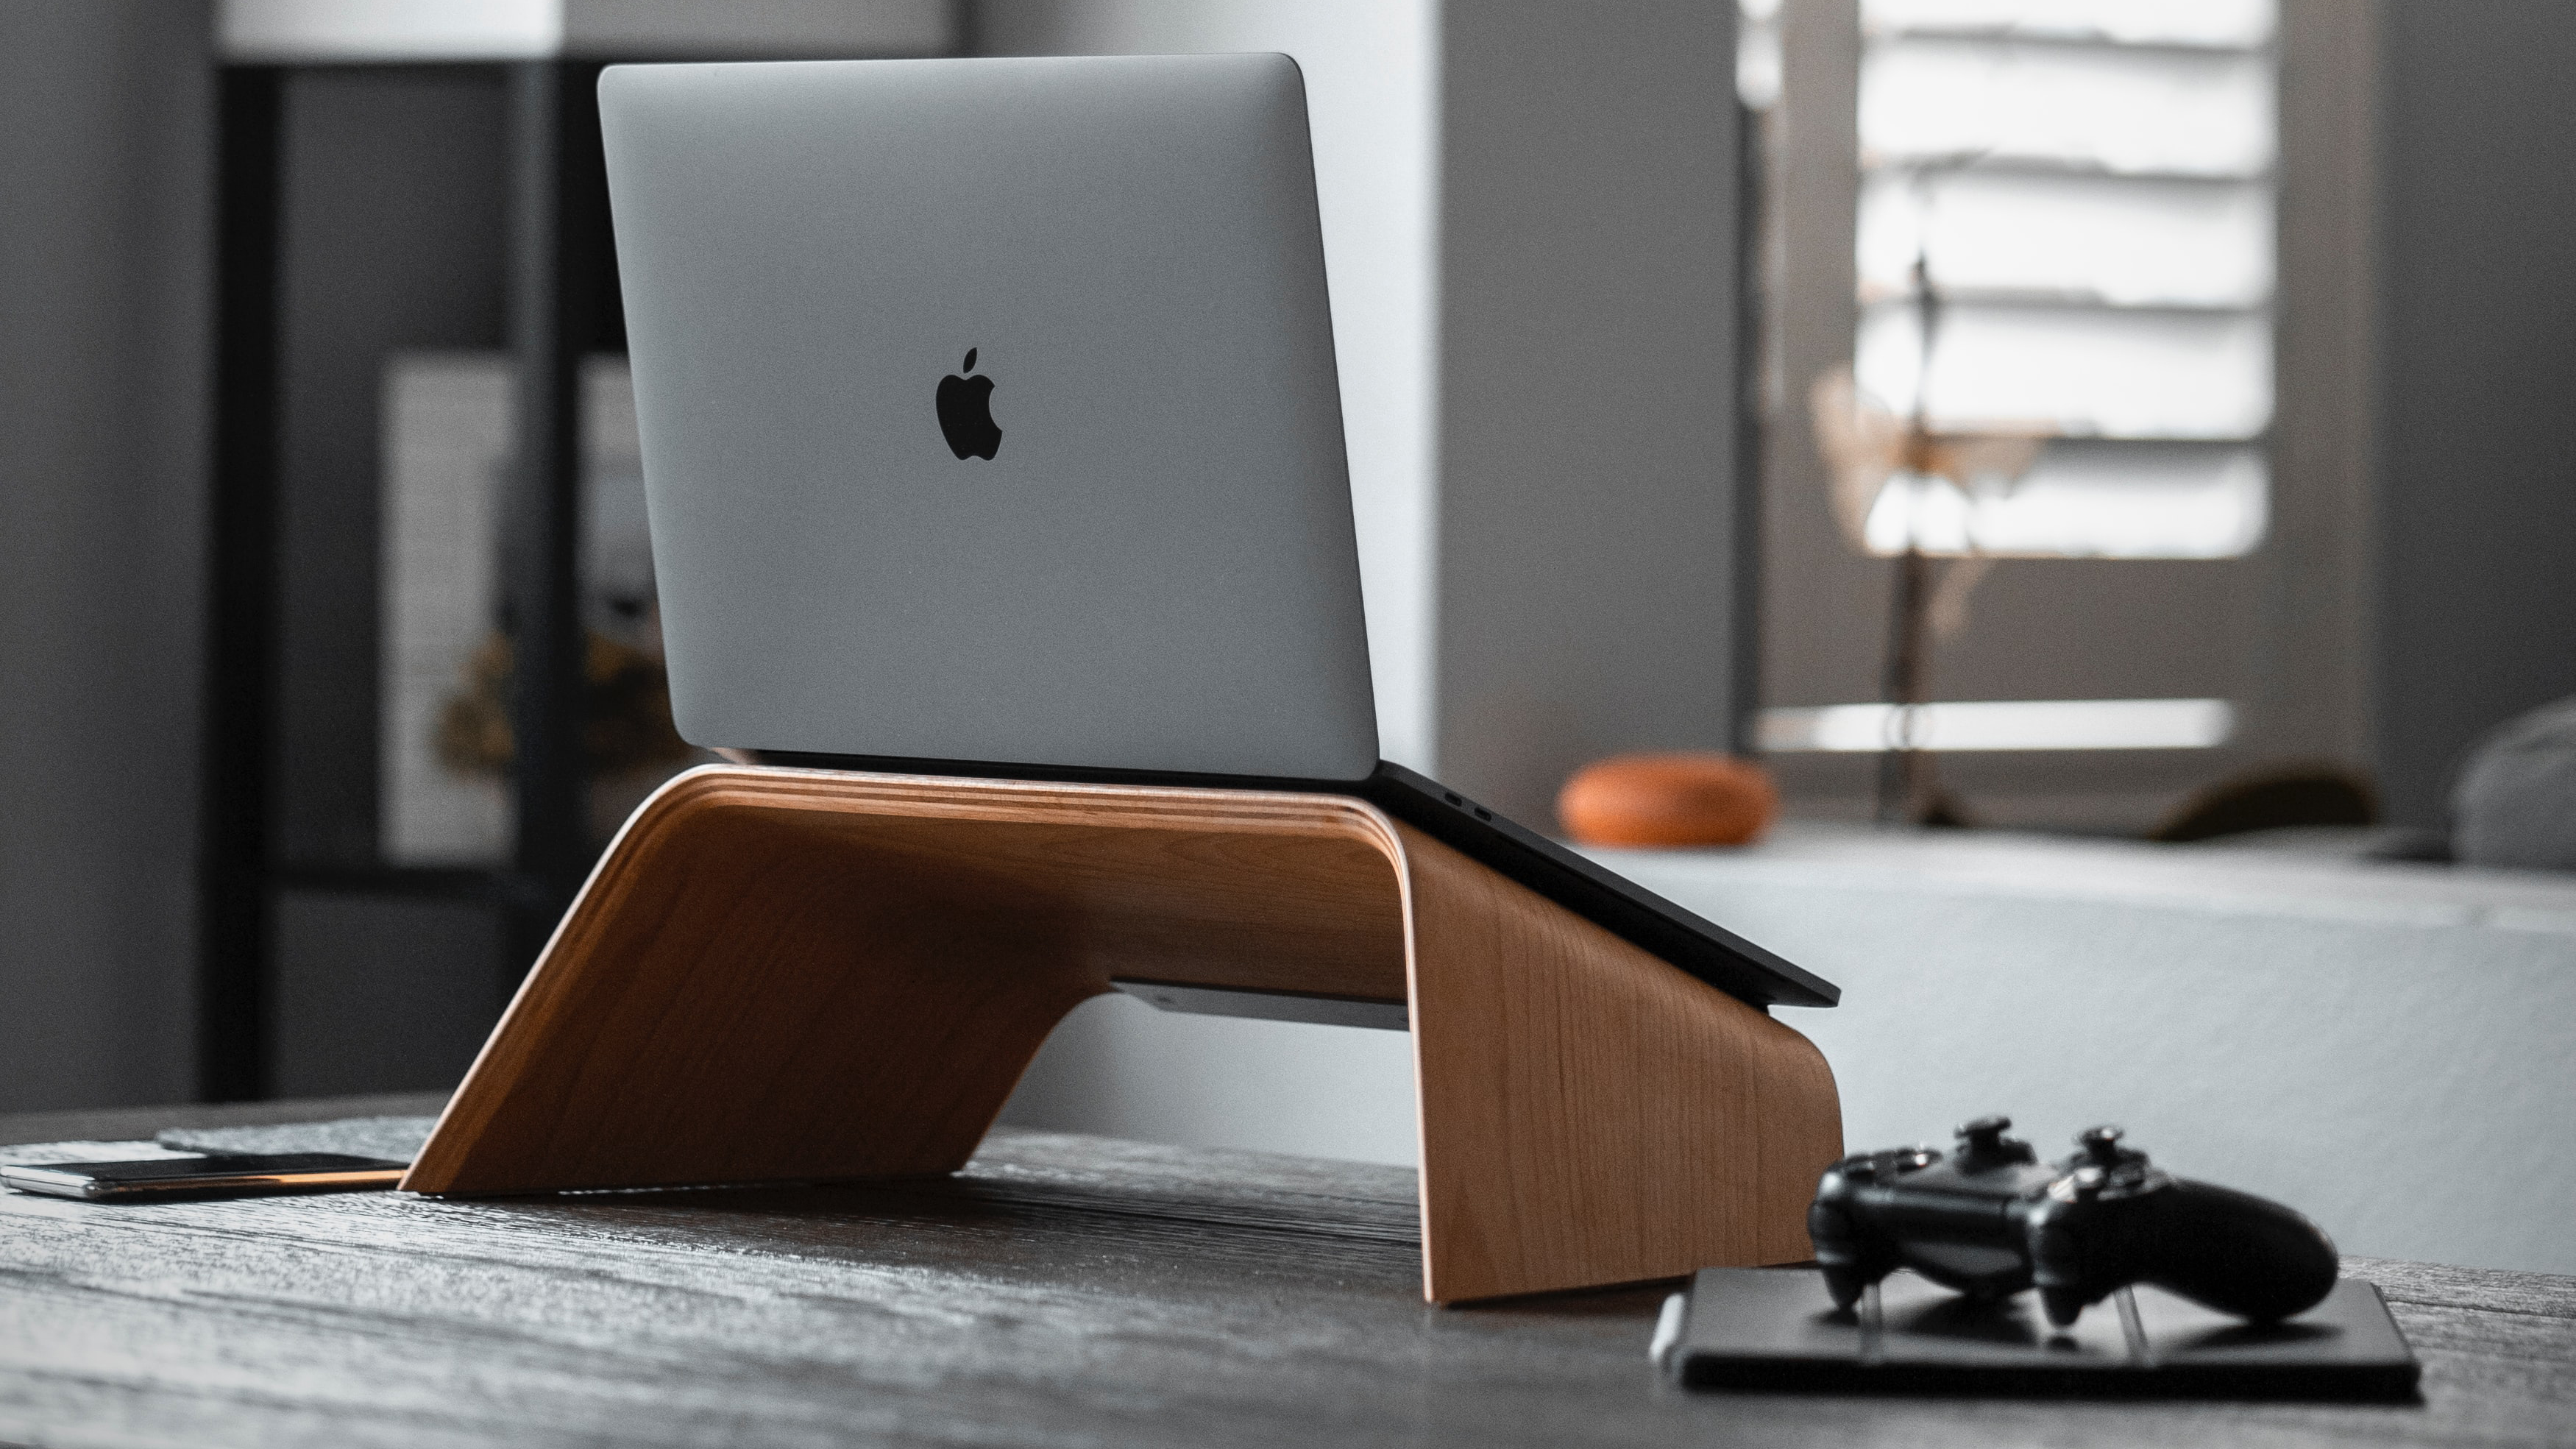 Best laptop stands in 2020: Prop up your laptop with these